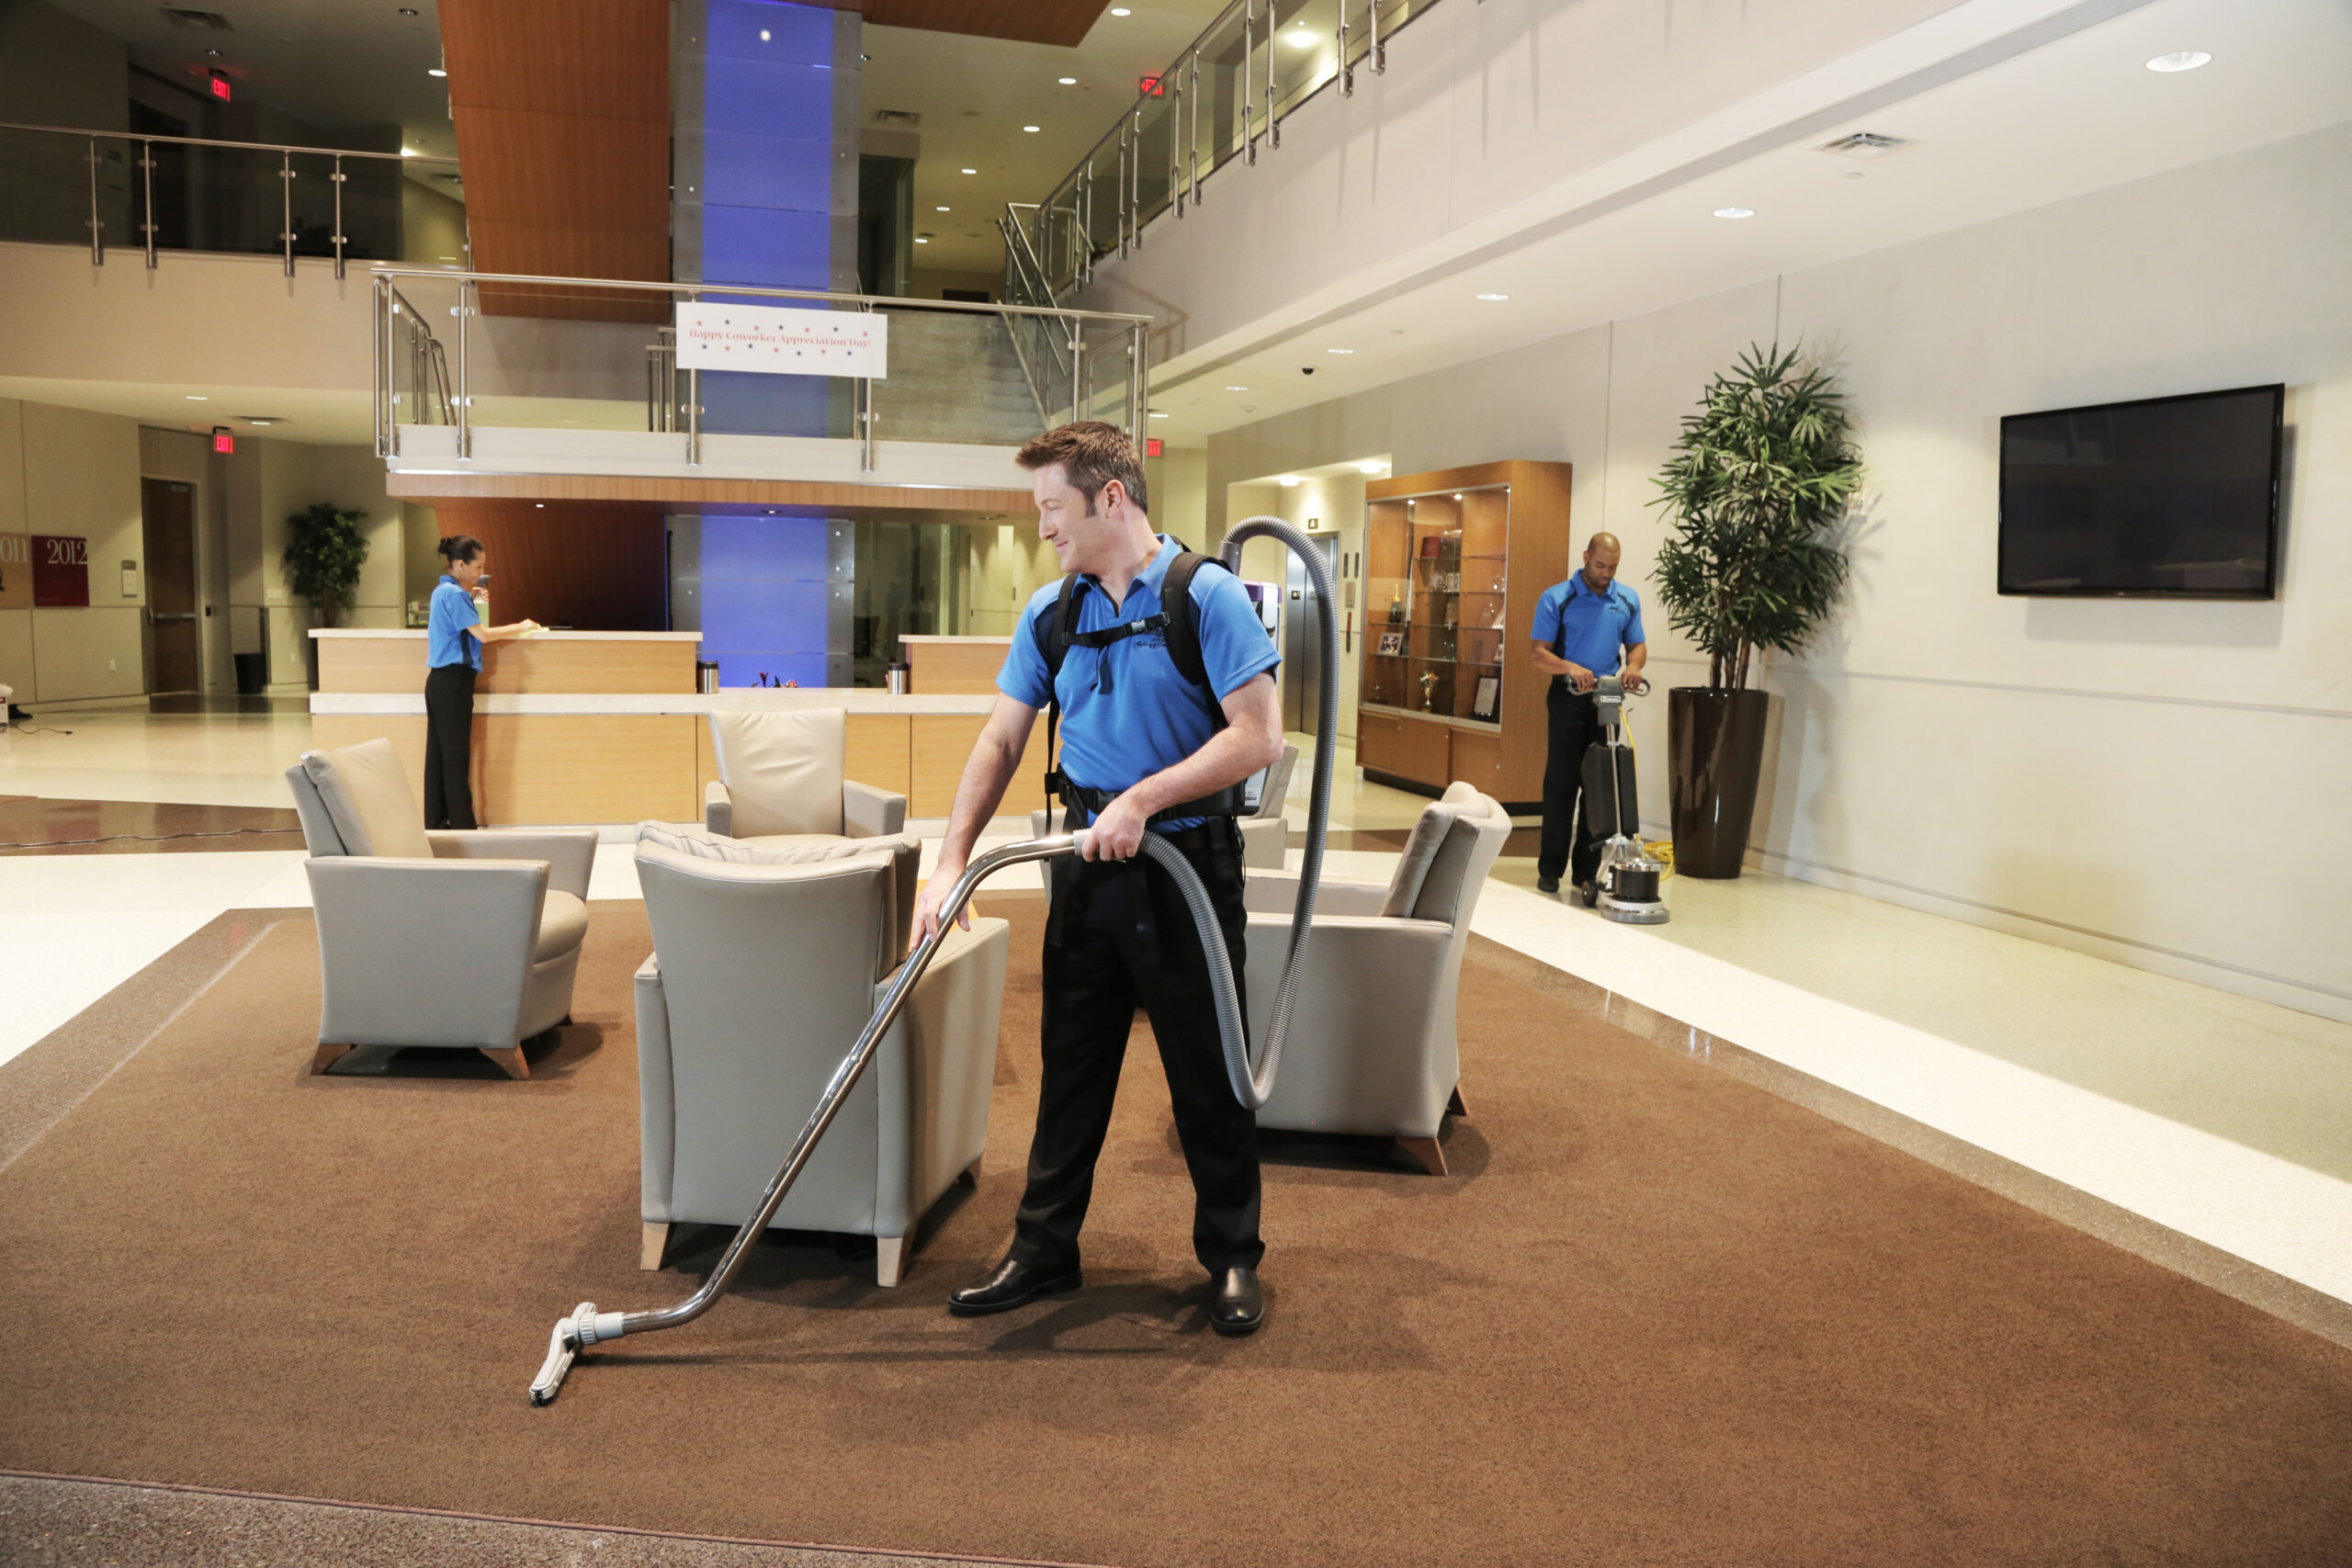 Group Cleaning Office Lobby